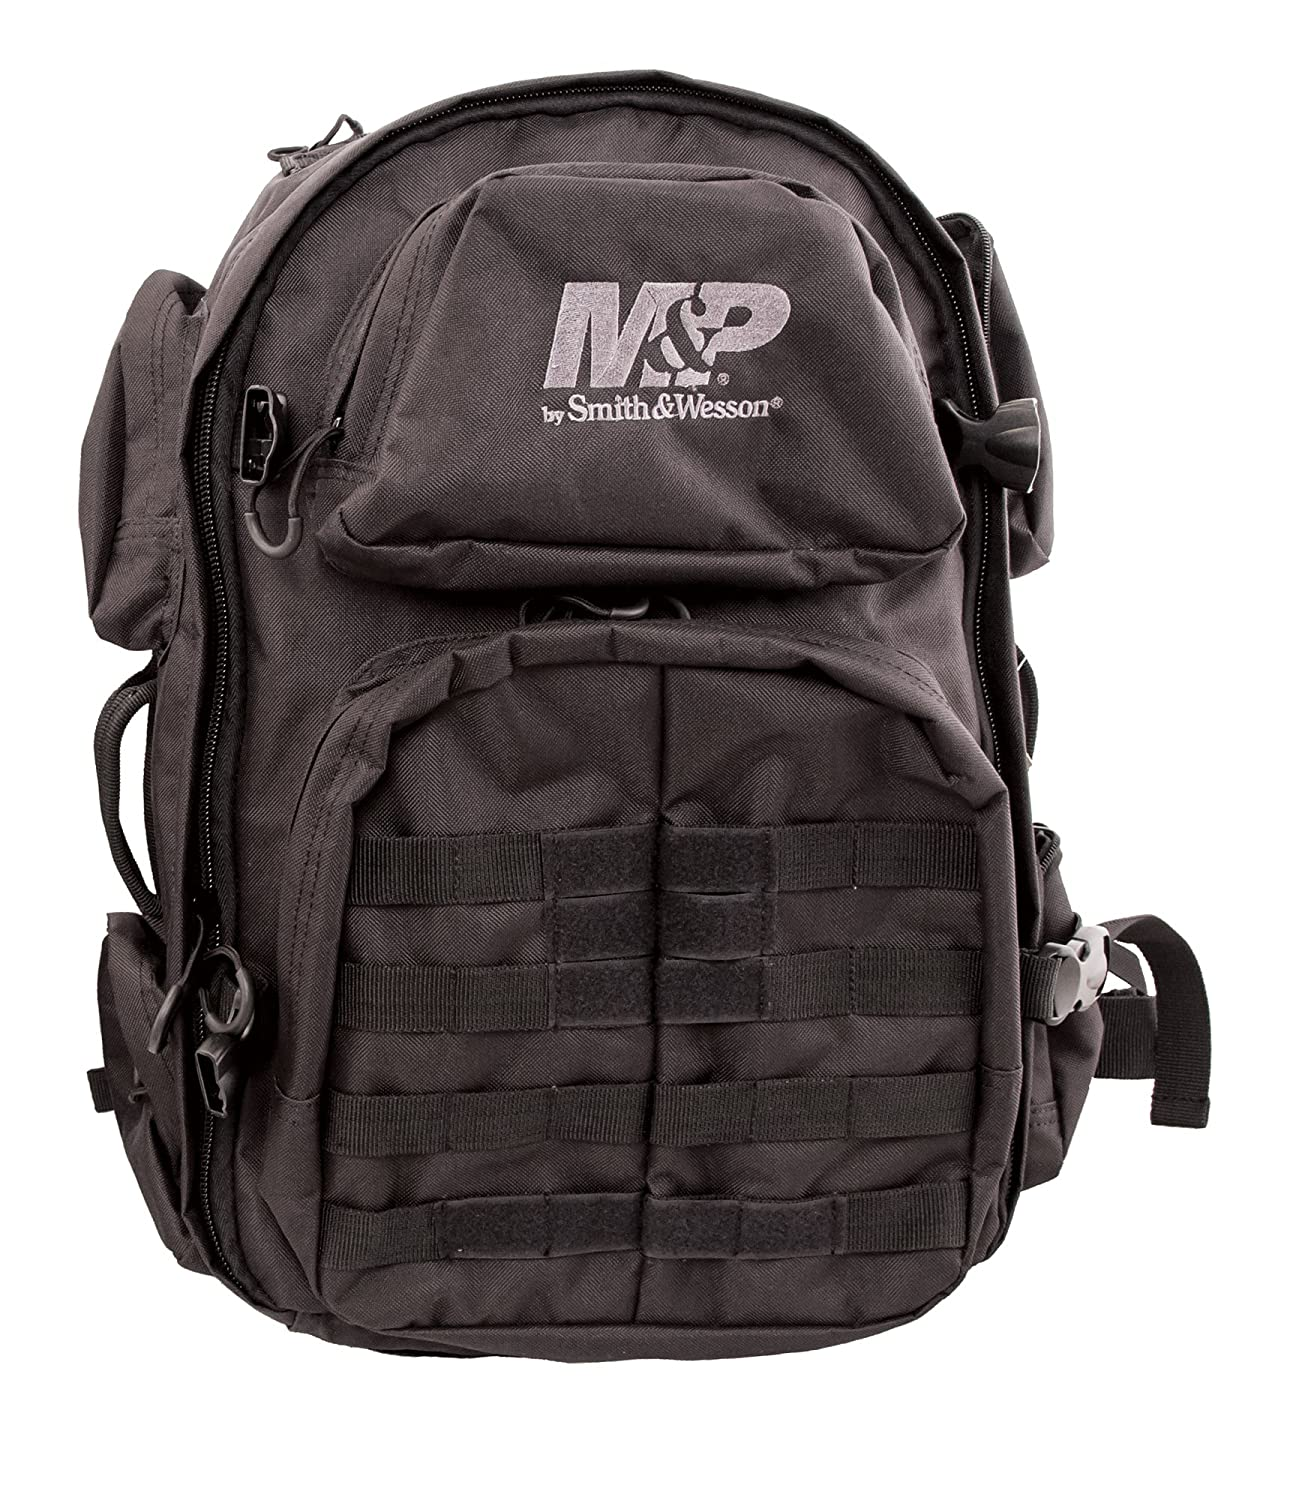 Smith & Wesson Gear Pro Tac Largeバックパックwith Tactical Rugged Weather Resistant MOLLEの狩猟ハイキングキャンプ旅行学校範囲スポーツ日常緊急用デイパック B01BDW1VBA